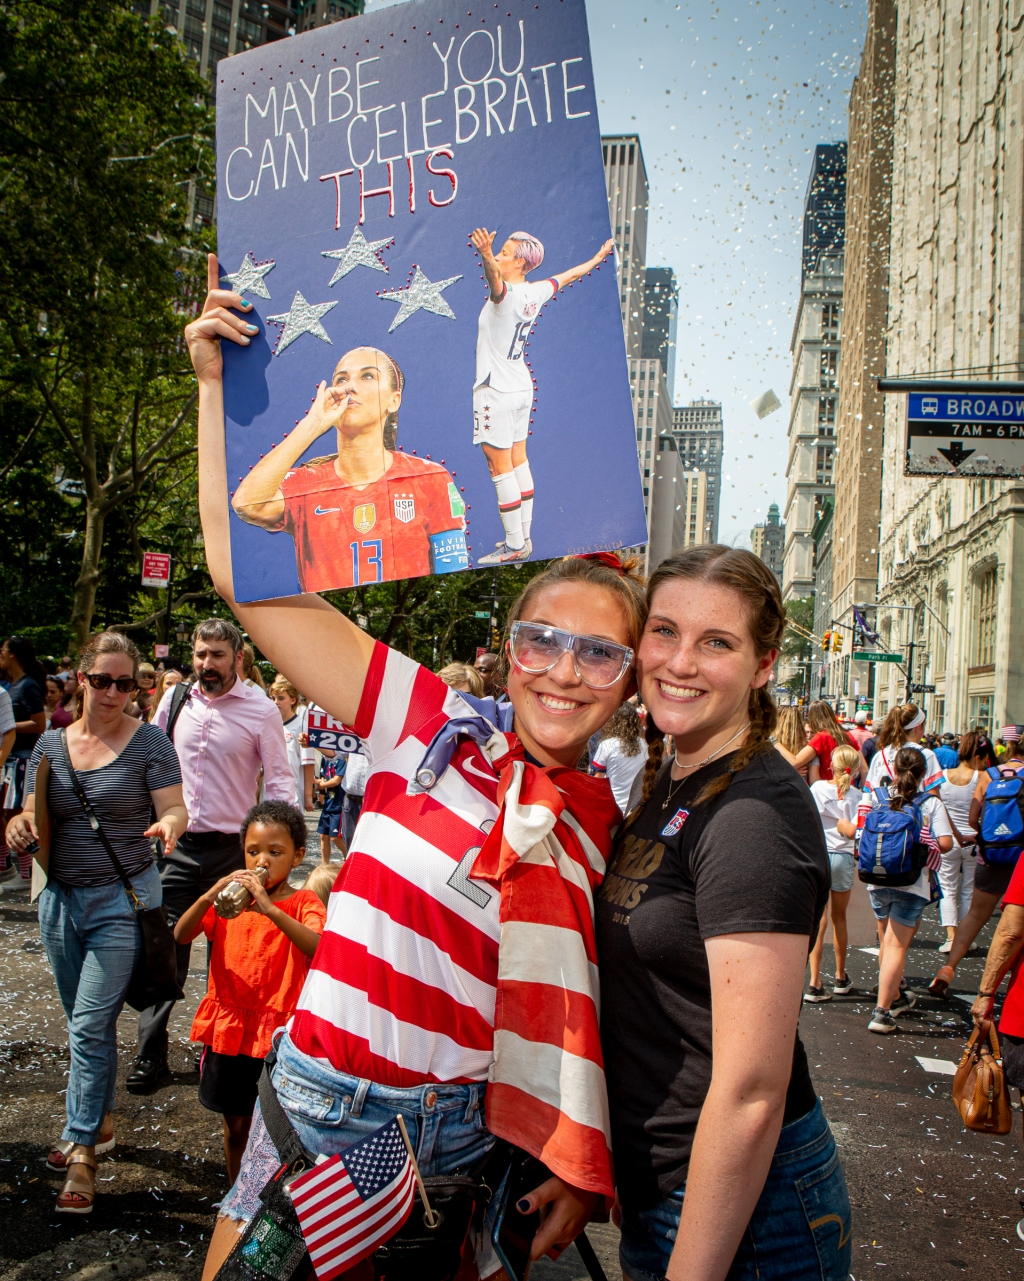 """Eliza Smith and Shannon Pruzinsky came to New York from Beacon Falls, Connecticut. """"This World Cup means so much more than previous years,"""" says Smith, 18. """"I love Megan Rapinoe and what they are representing as far as wage gaps and equal pay. They are such empowering women."""" Pruzinsky, 18, says she's a longtime fan."""" I've looked up to these women since I started playing soccer at age three, they have been such an inspiration,"""" she says"""